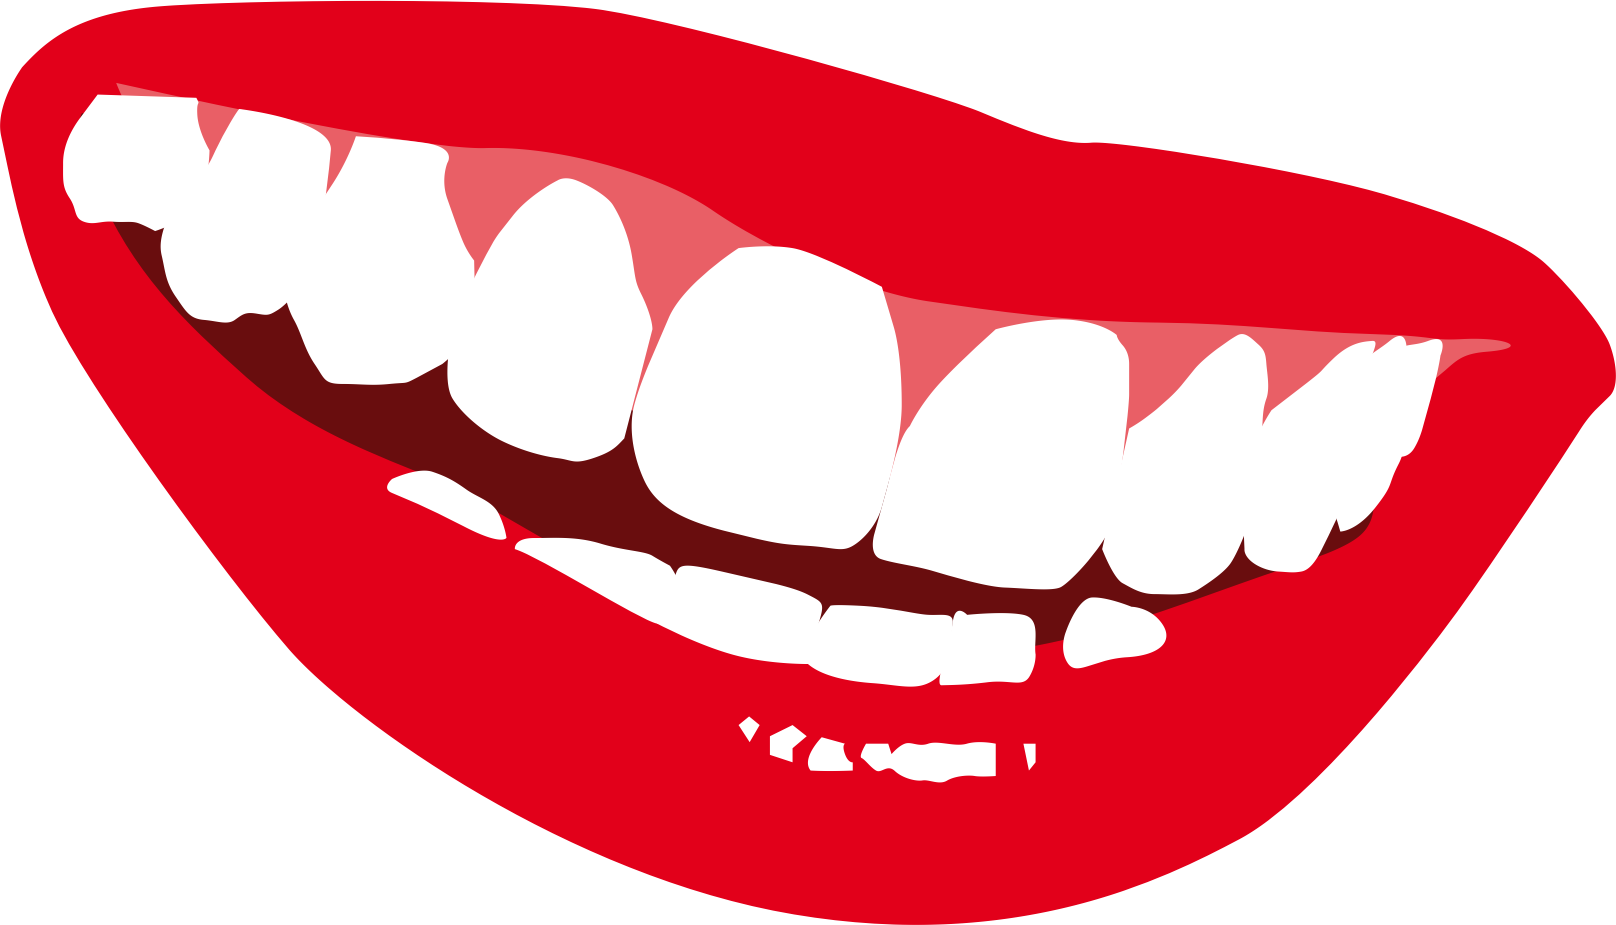 Smile Lips Png Images image #46505